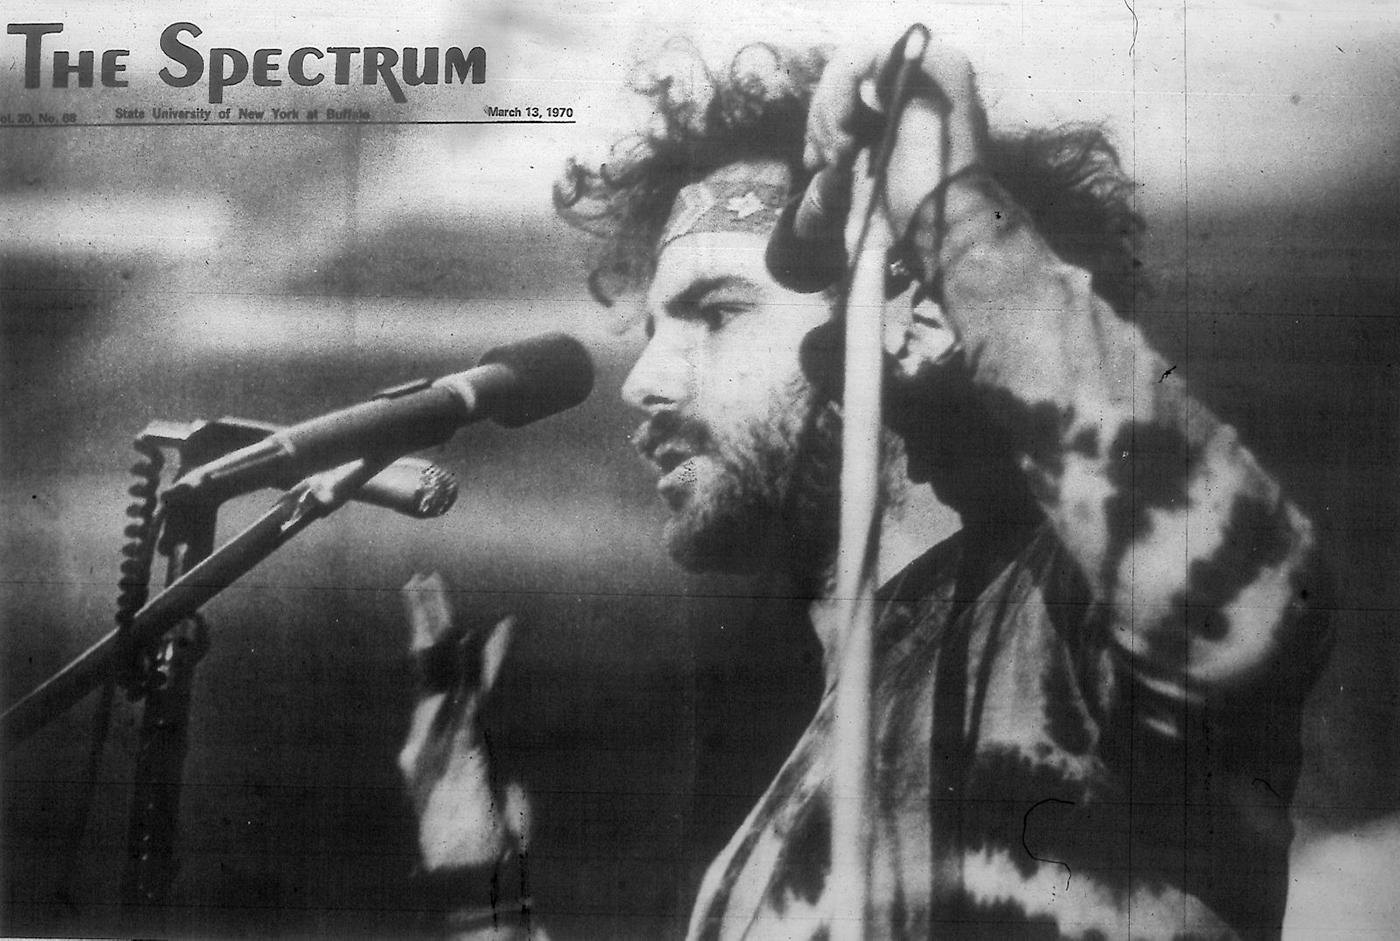 Jerry Rubin speaking at the University at Buffalo's Fillmore Room, one month after his conviction in the Chicago Eight conspiracy trial. Image: The Spectrum/Wikimedia Commons